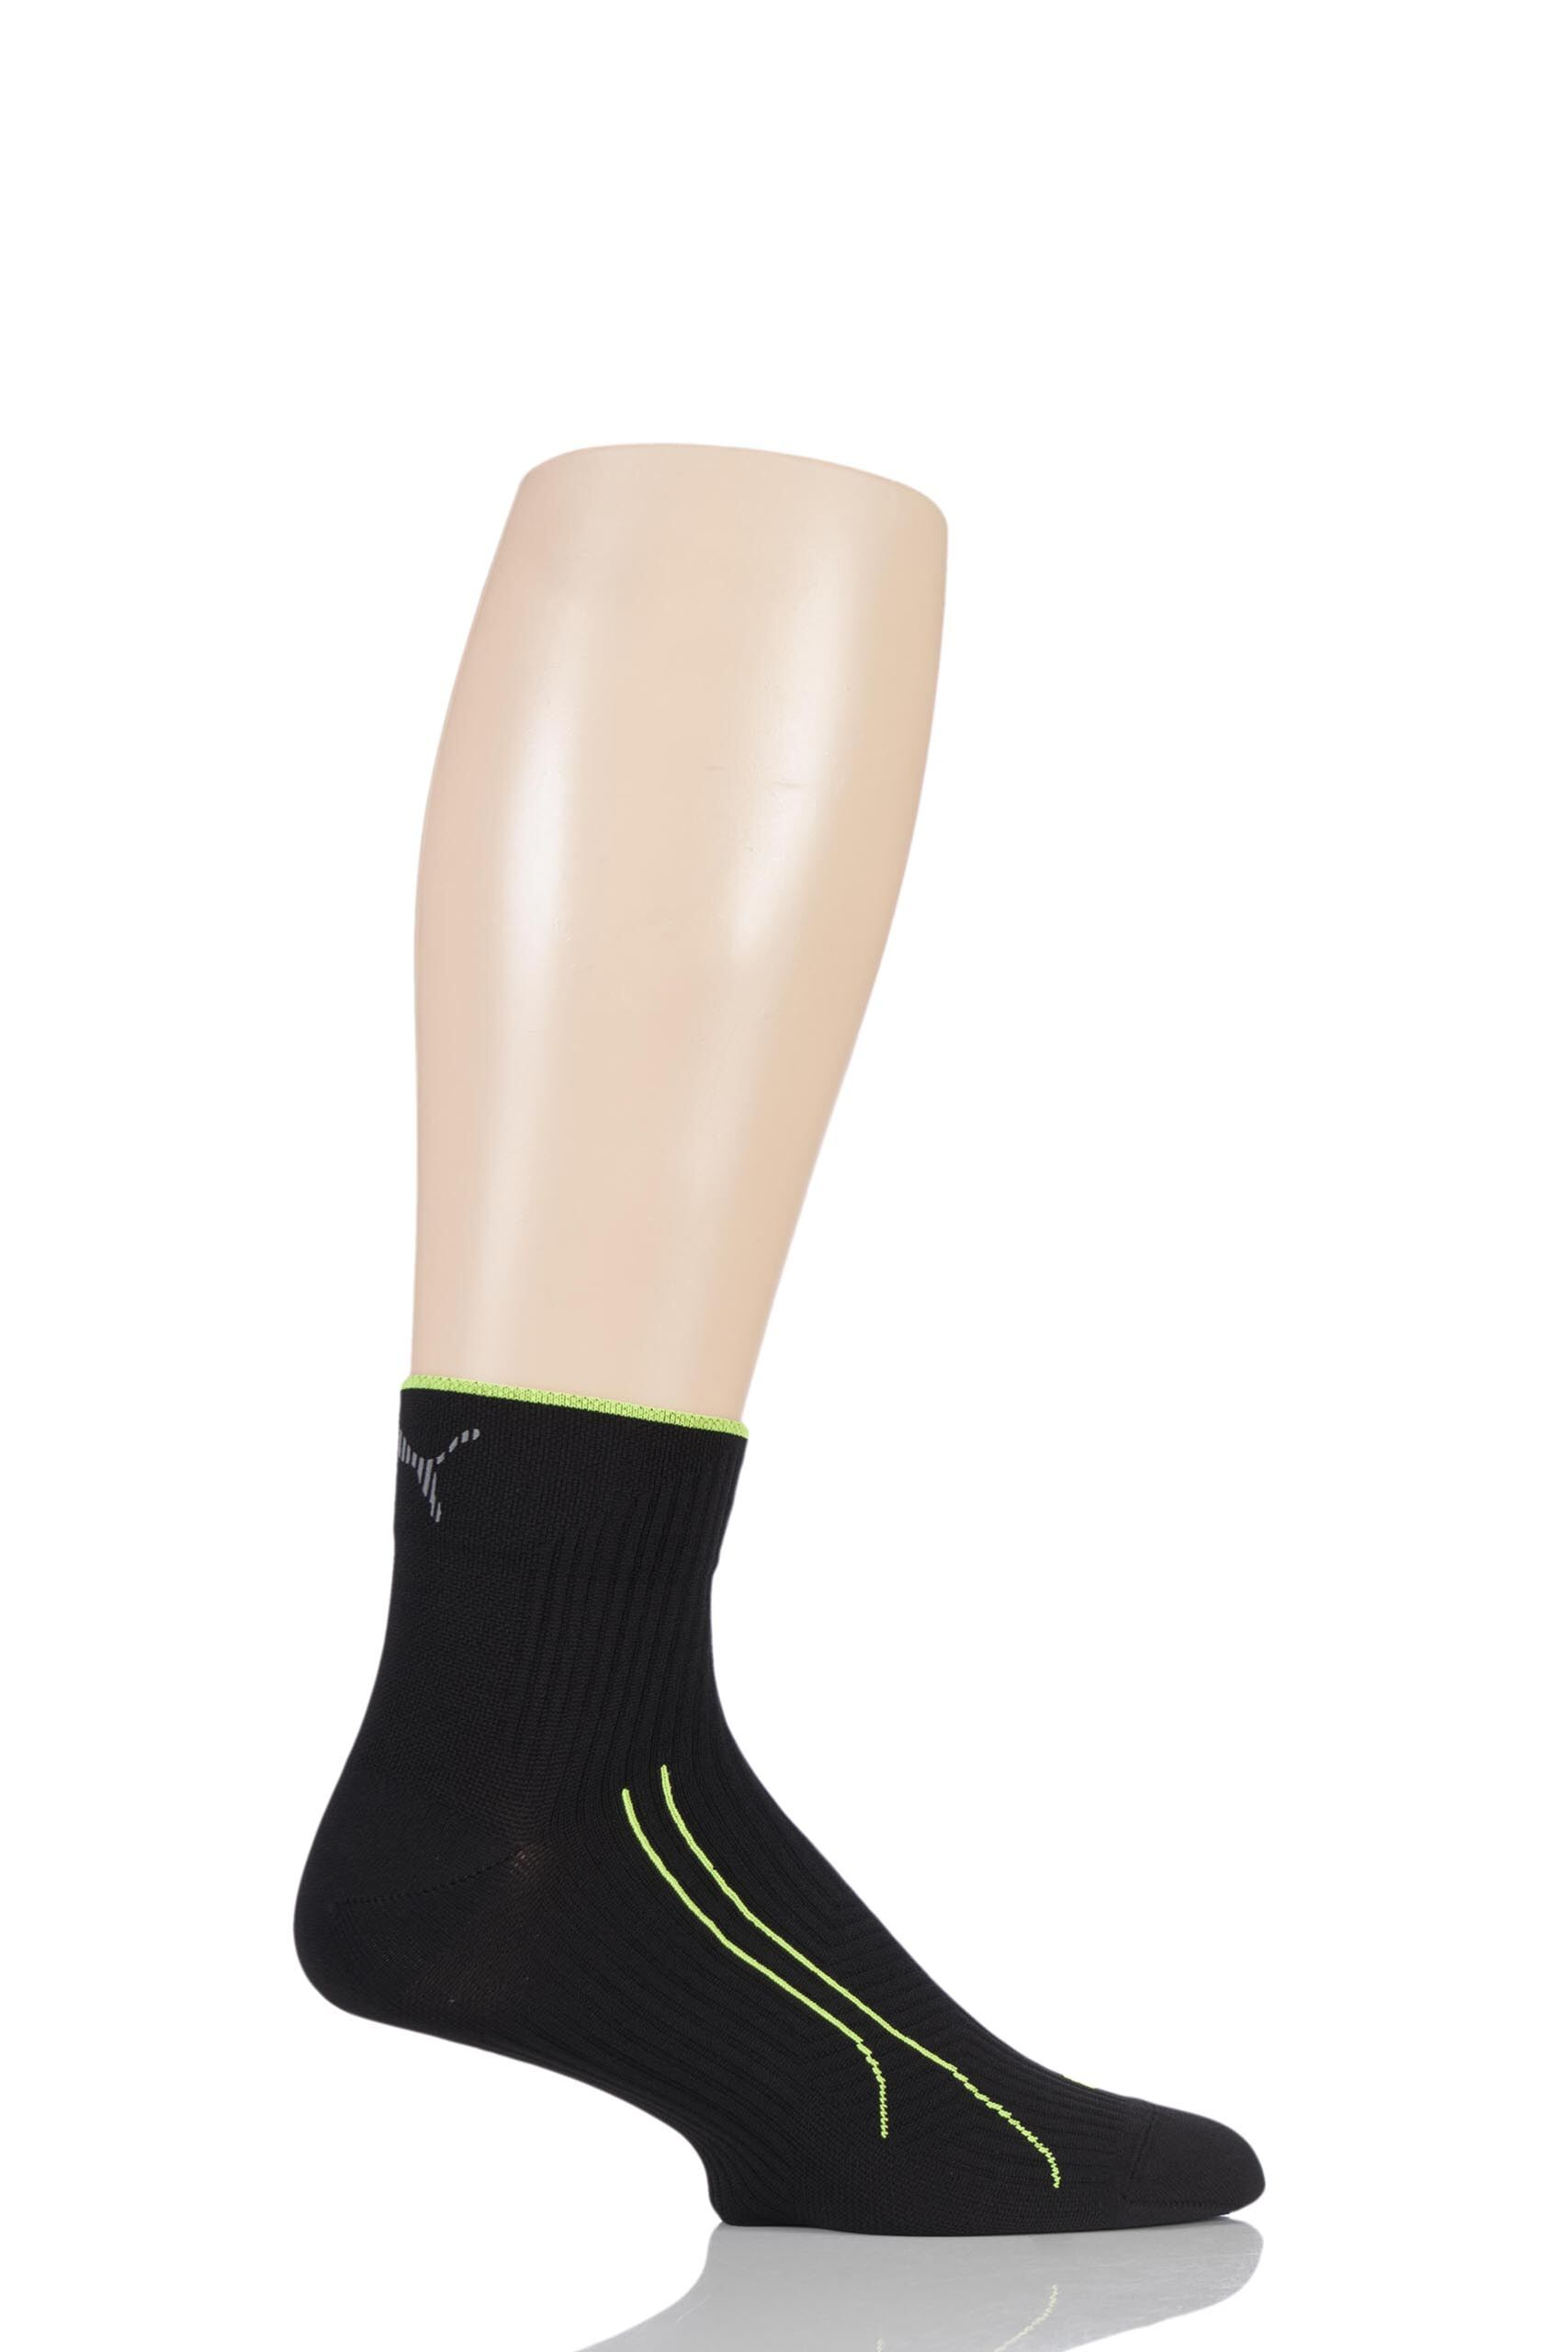 Image of 1 Pair Black Performance Running Compression Quarter Socks with Tactel Unisex 6-8 Unisex - Puma